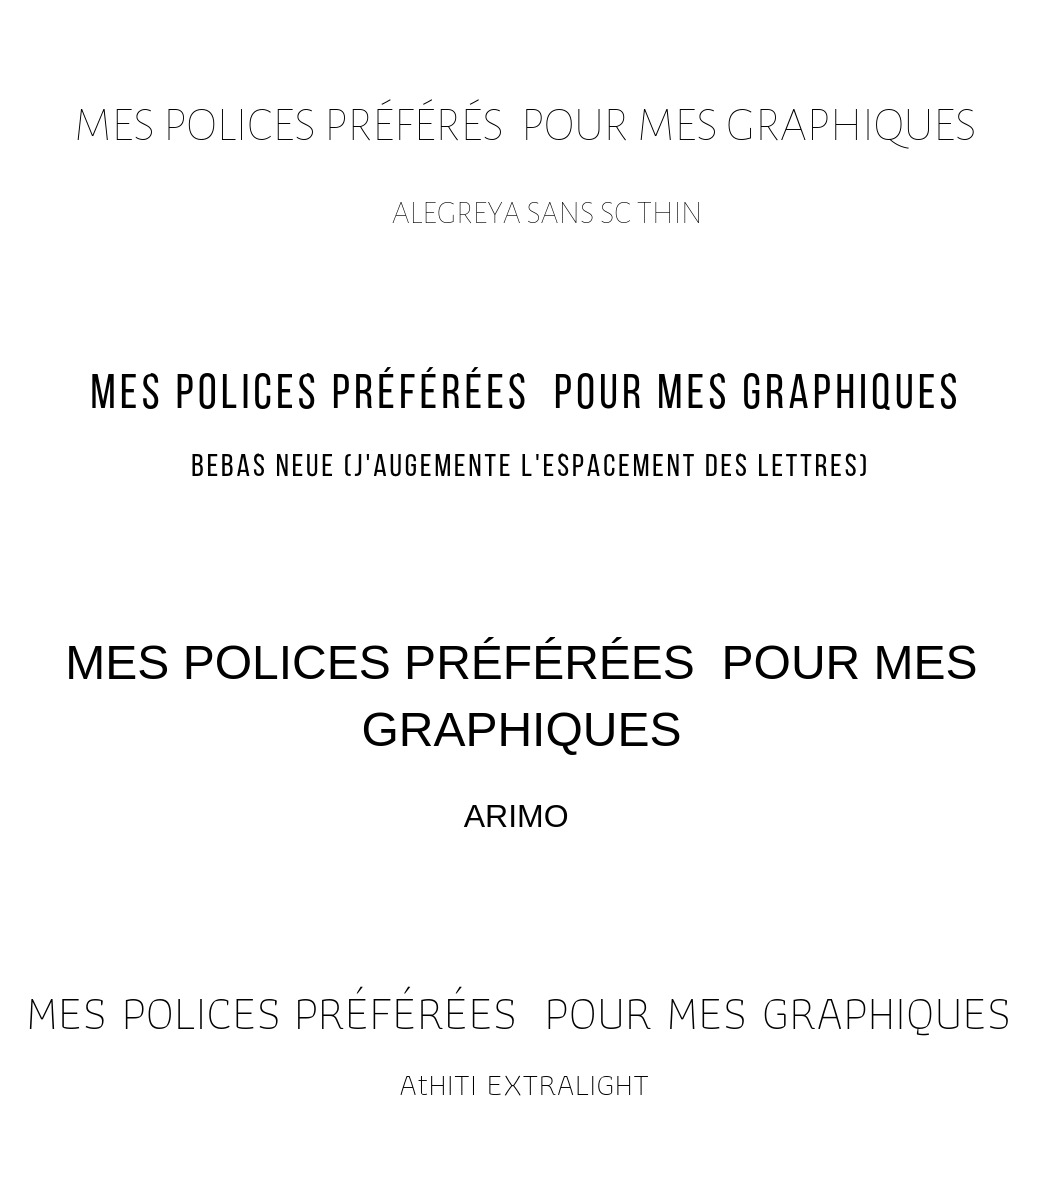 font police adobe graphique